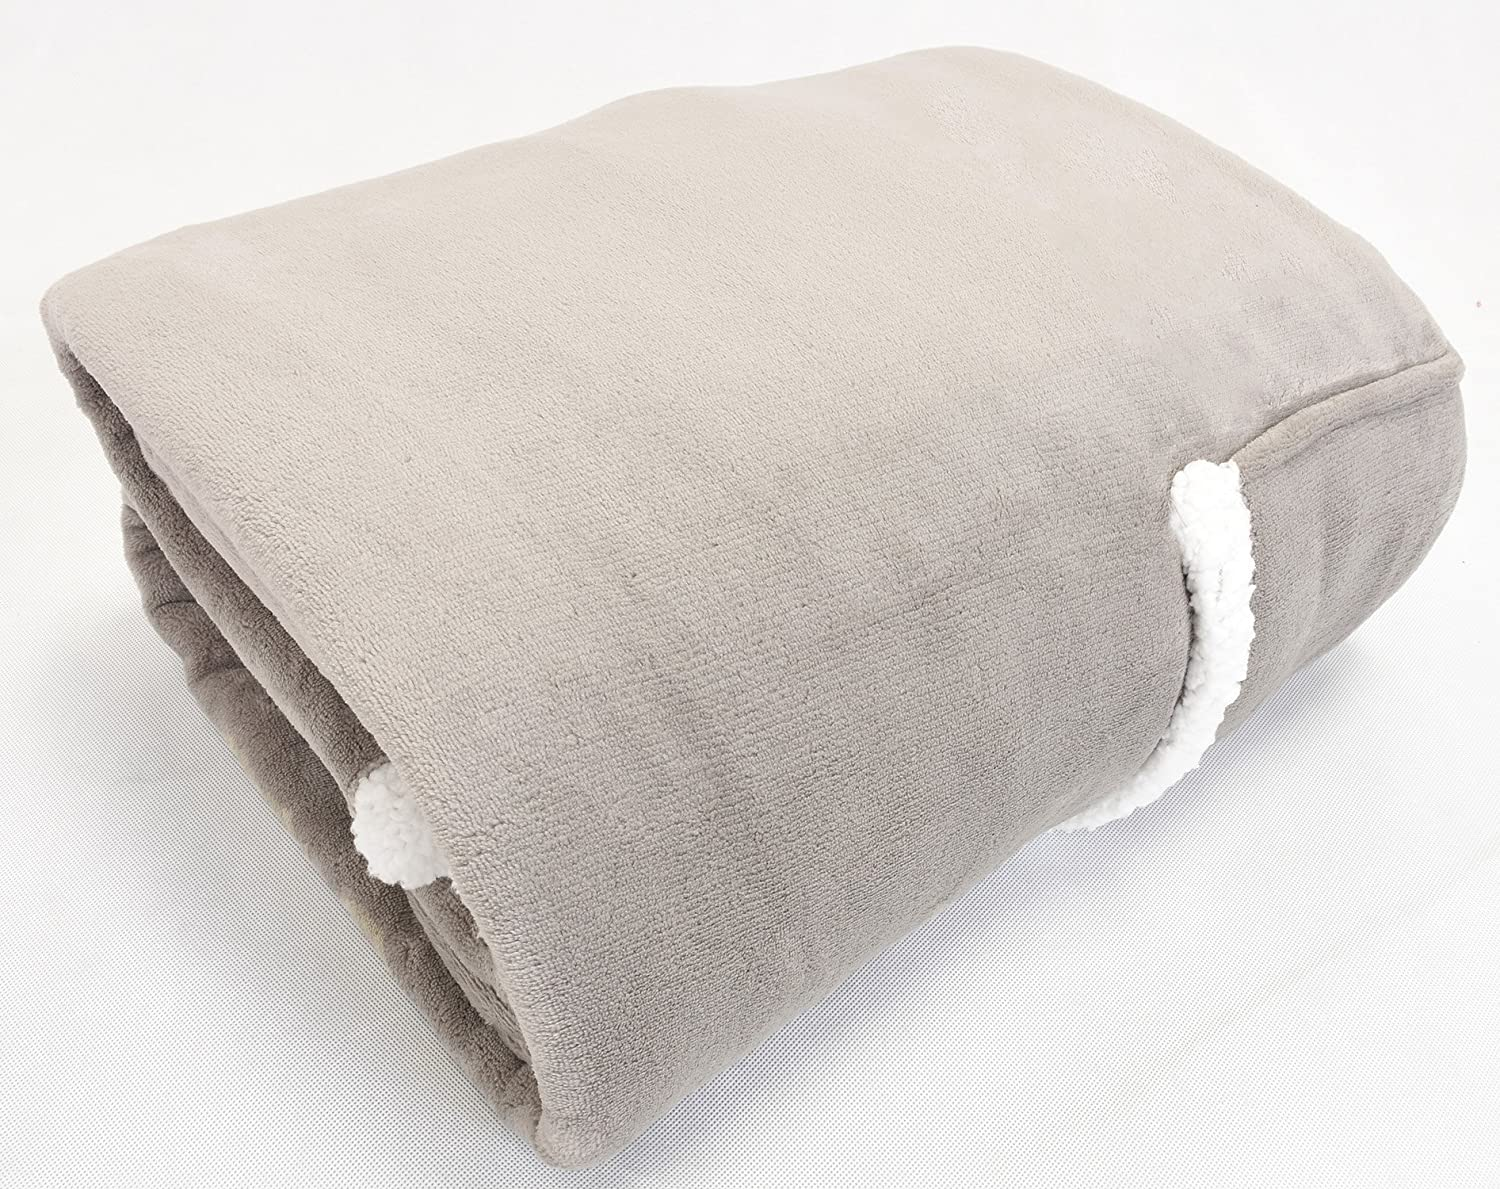 super-thick-wearable-blanket